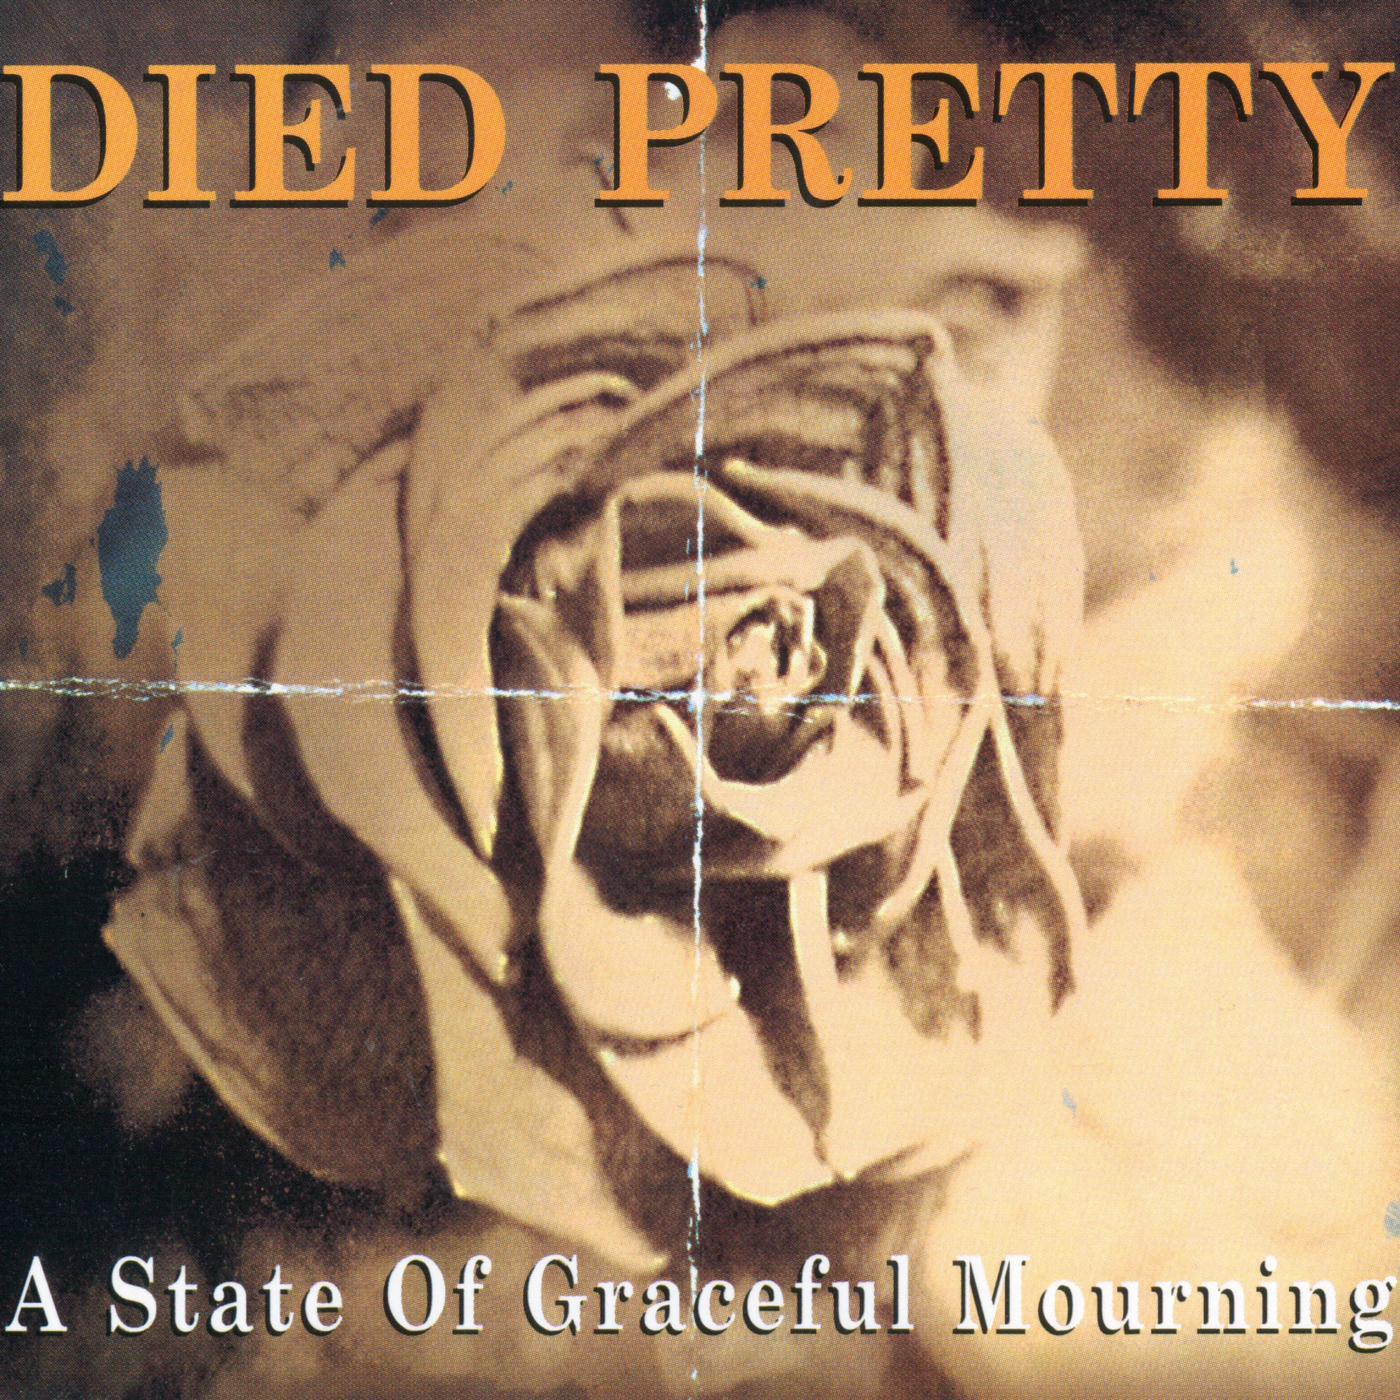 A State Of Graceful Mourning - Died Pretty